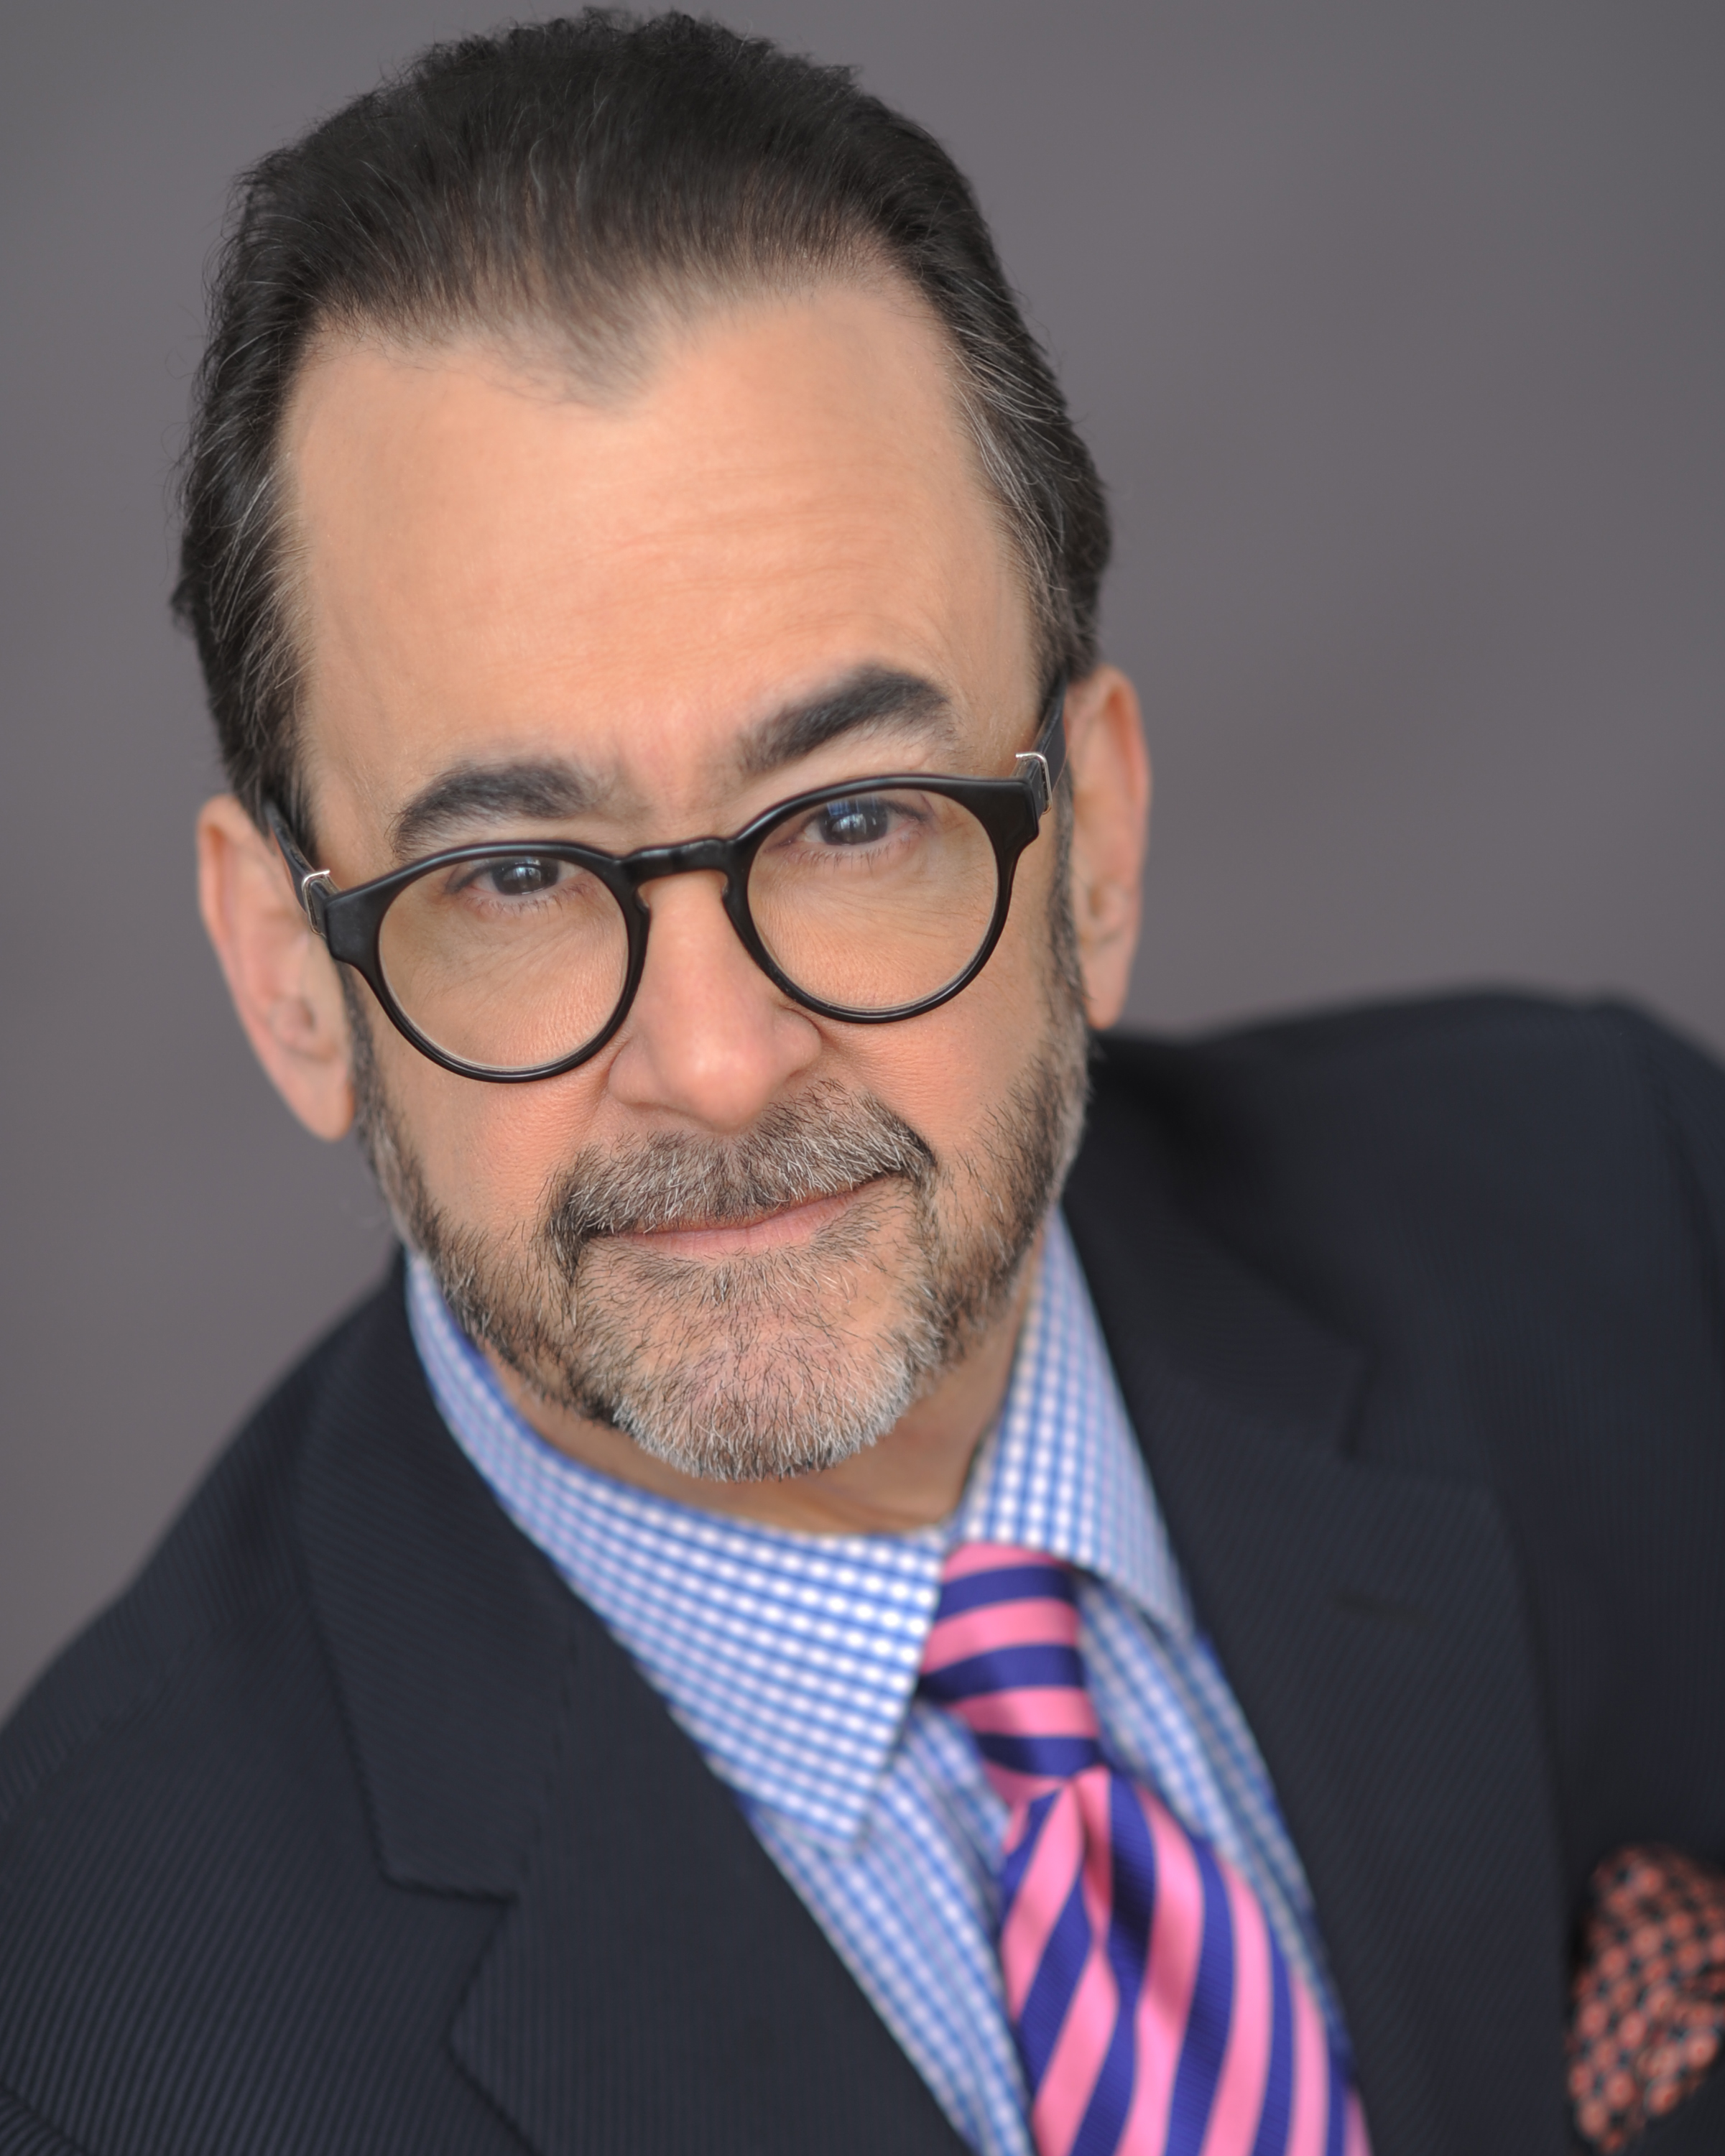 About Lionel Nation